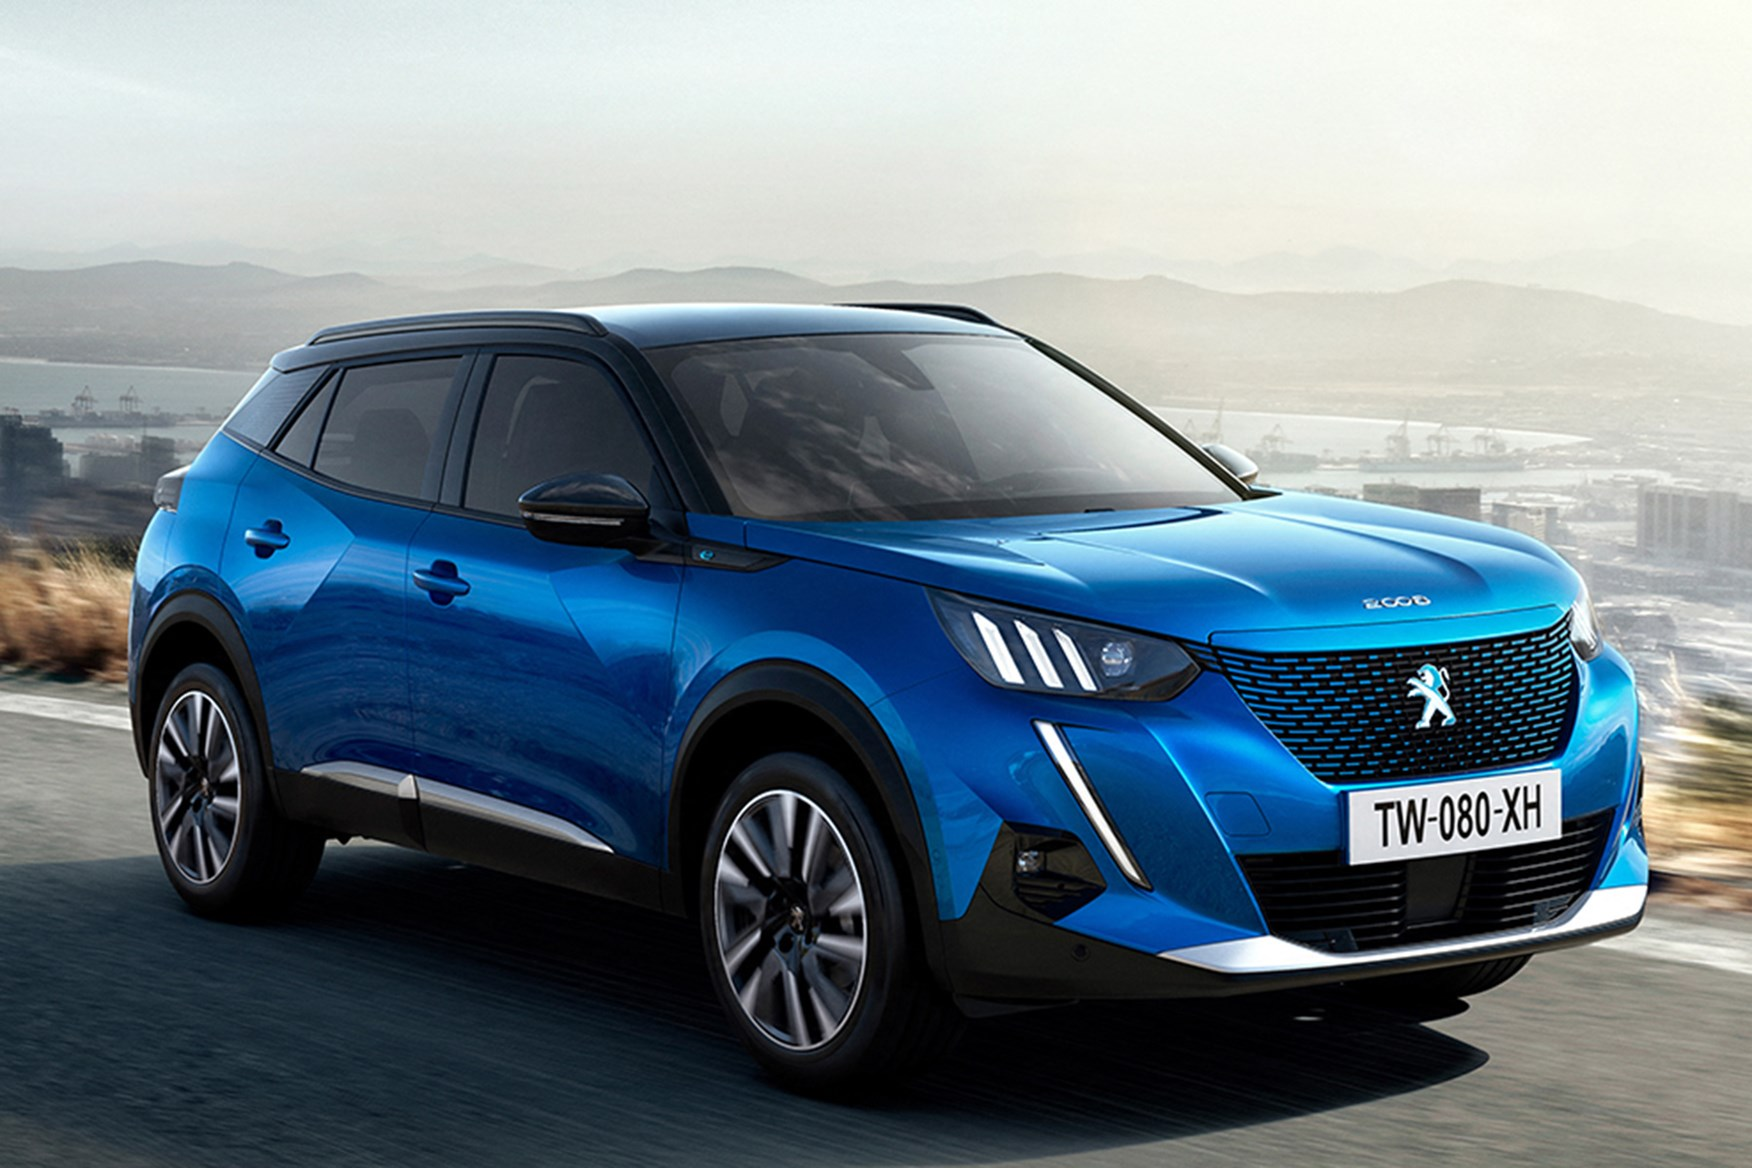 Peugeot 2008 Concept Crossover Model to Rival Nissan Juke